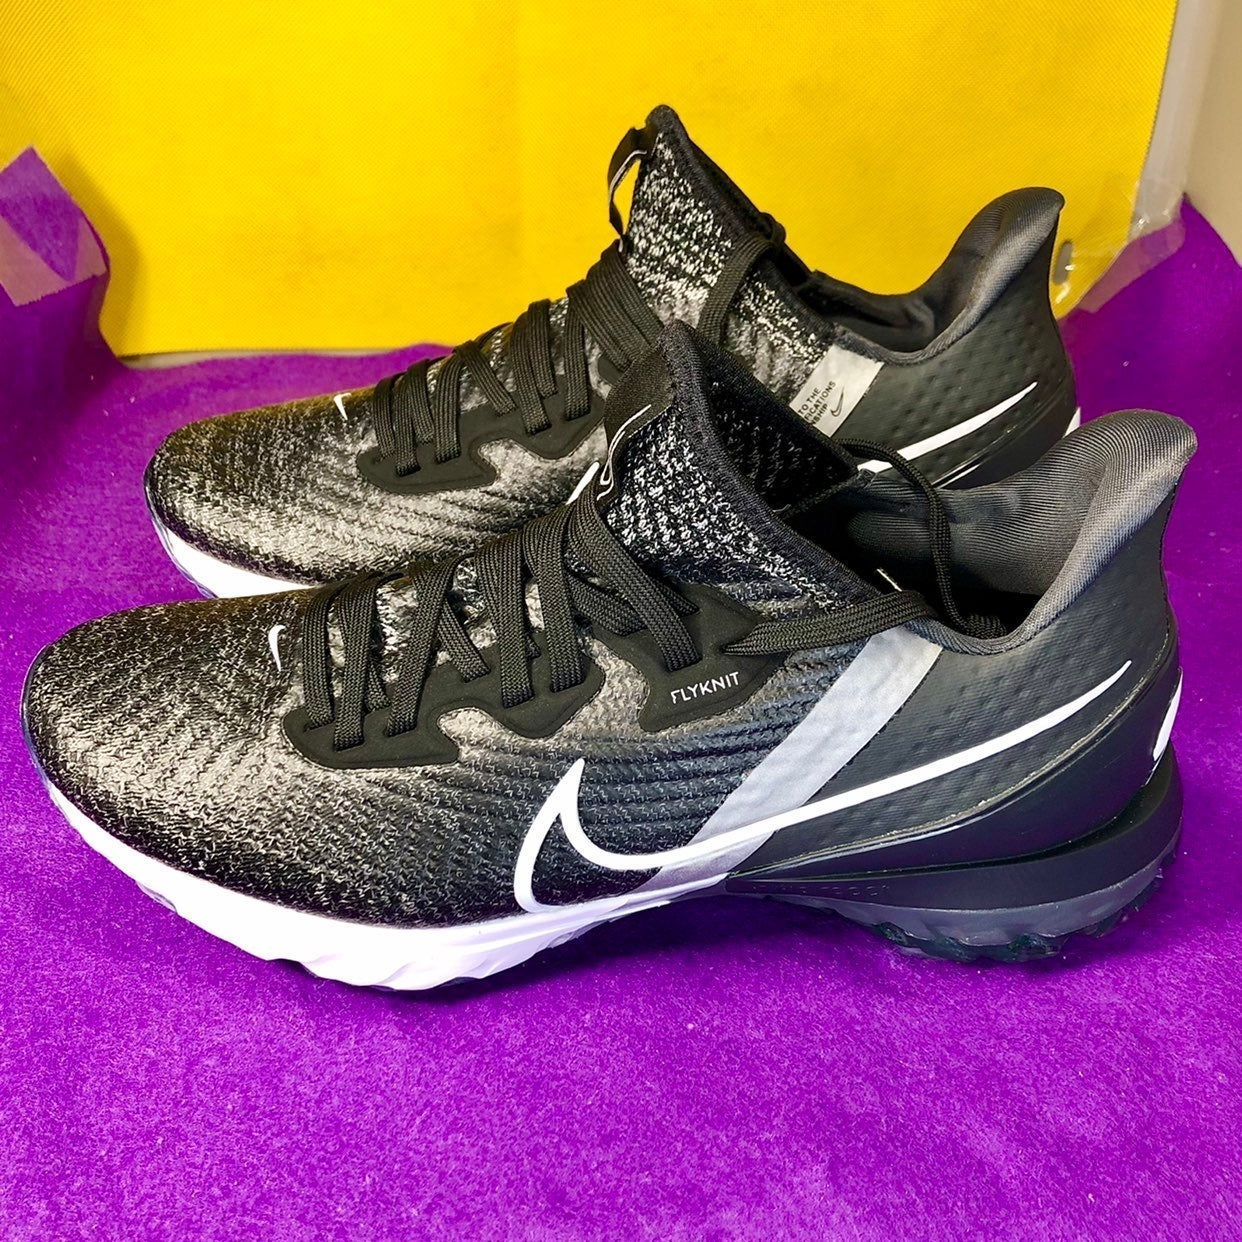 Nike Air Zoom FIyknit Infinity Tour Golf